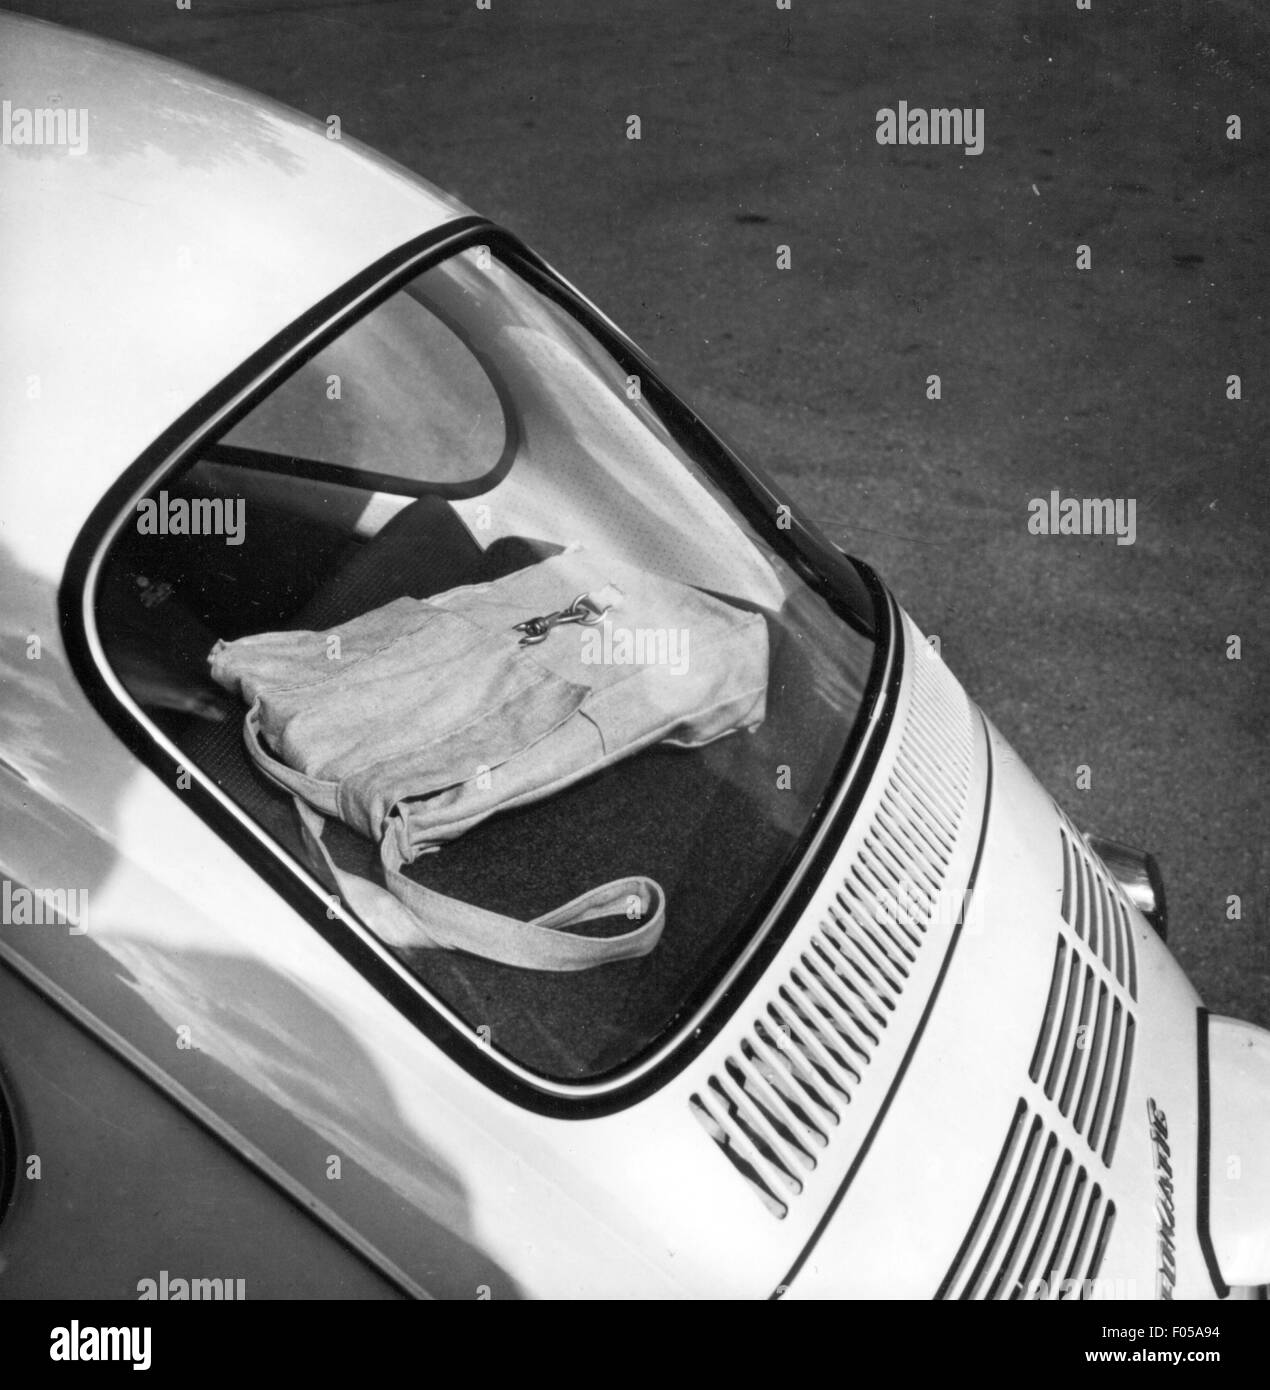 transport / transportation, car, vehicle variants, Volkswagen, VW beetle, rear window and shelf, 1972, Additional - Stock Image